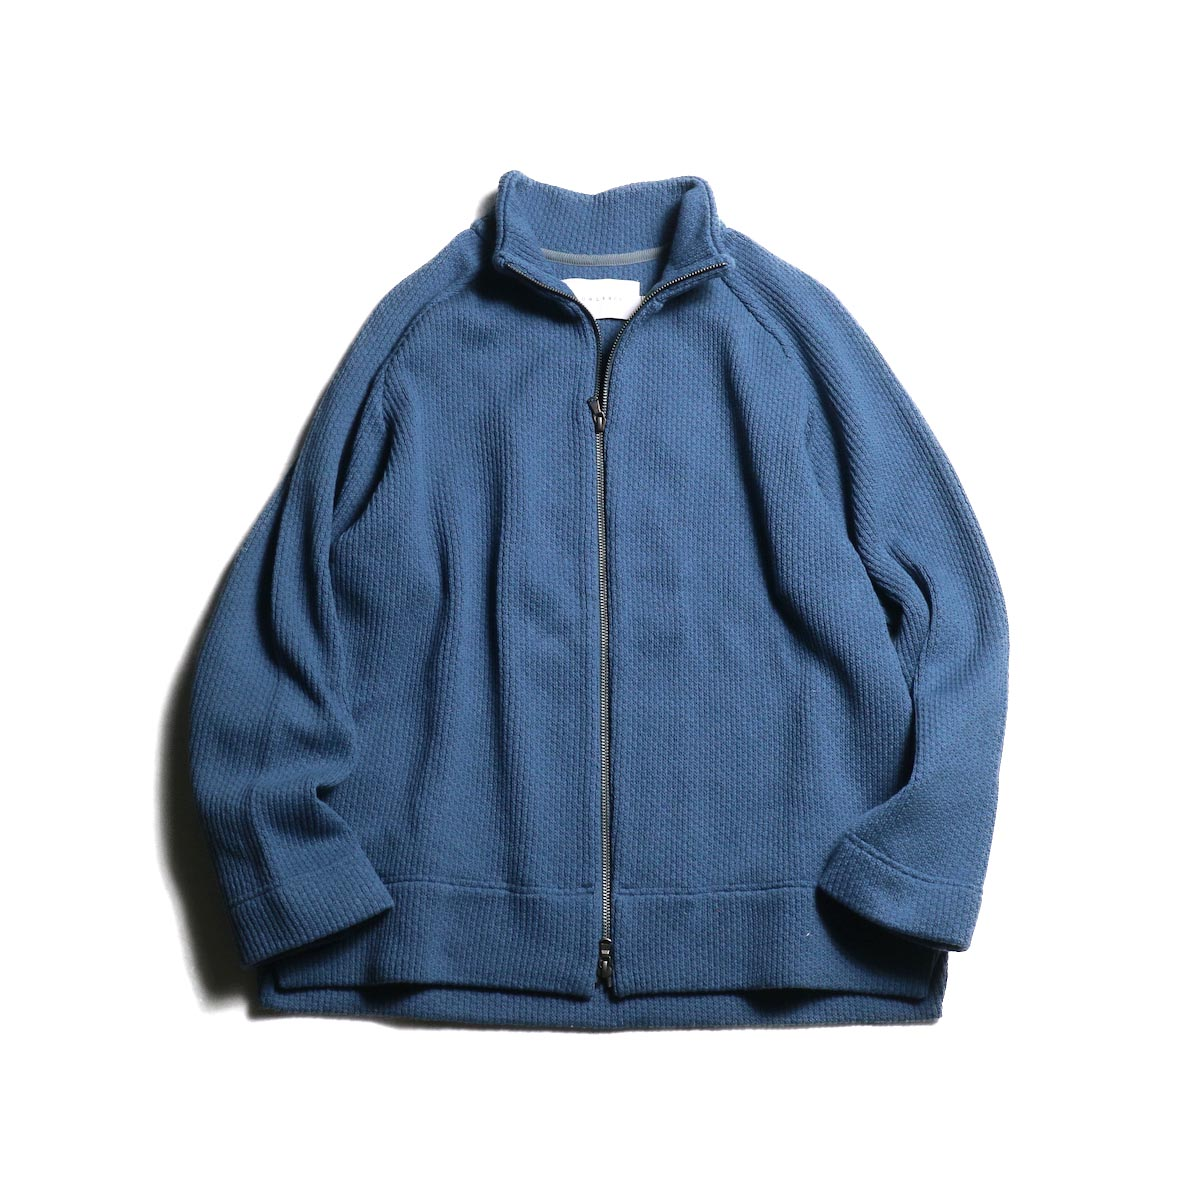 CURLY / CLOUDY FZ SWEATER (Blue Gray)